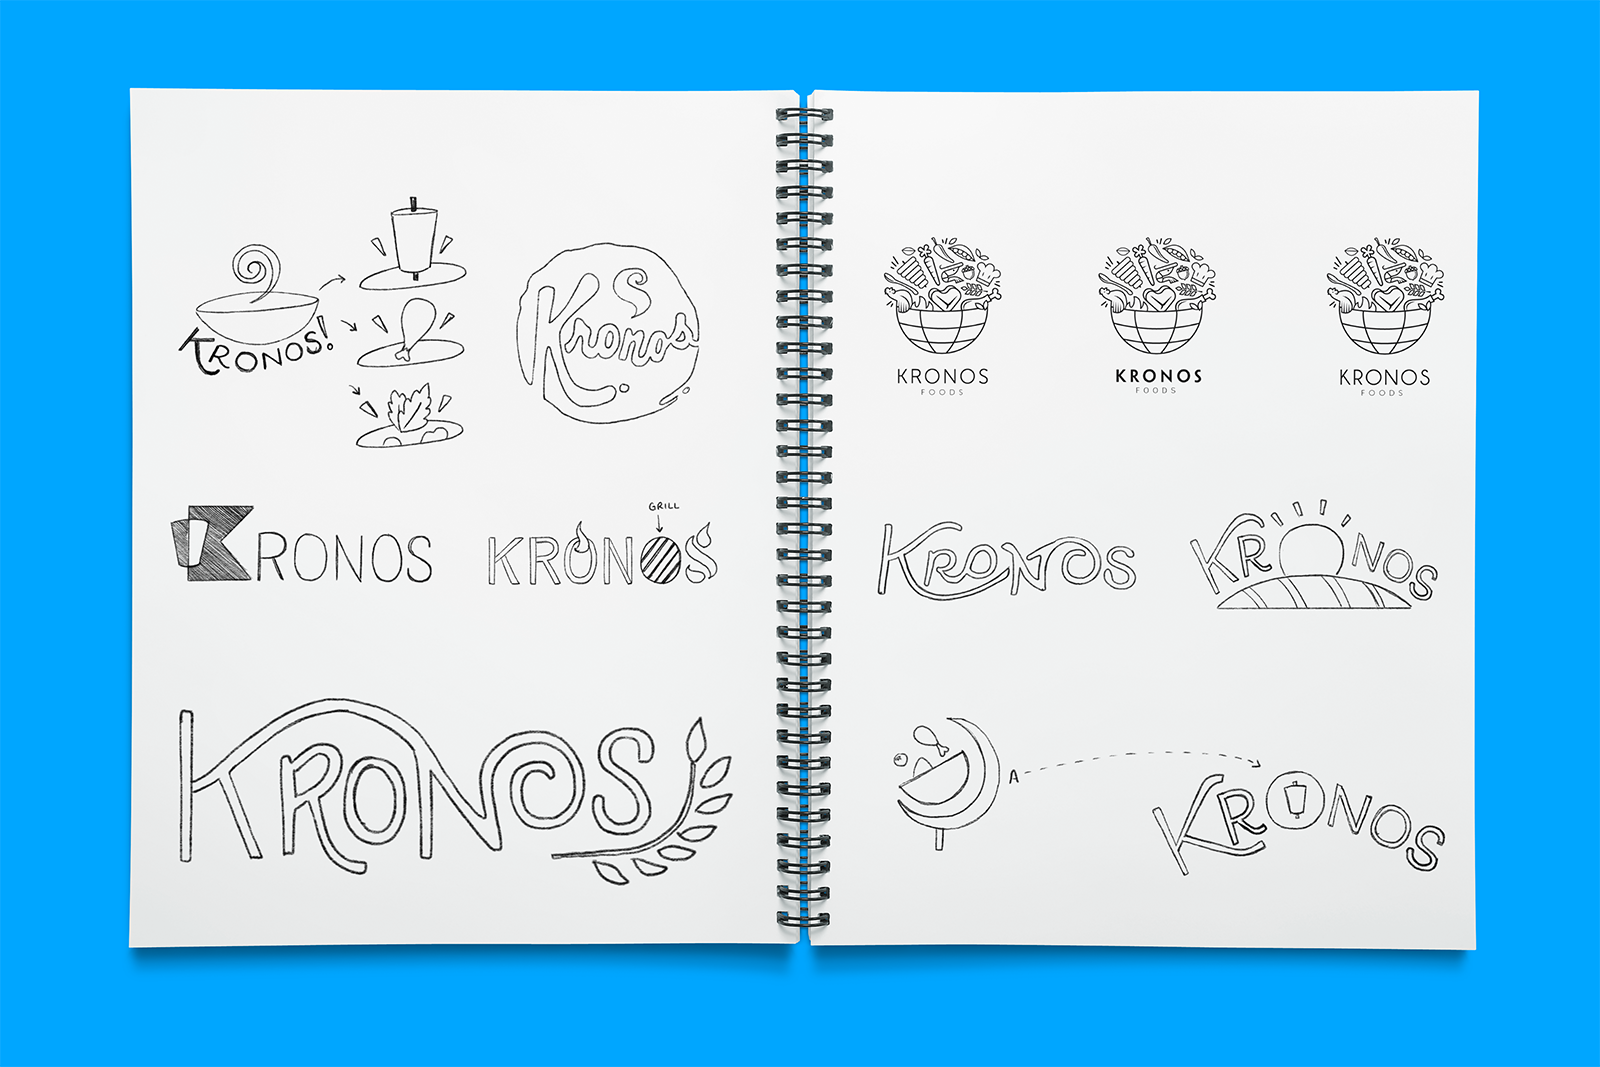 Sketches and ideas for the Kronos logo brand refresh